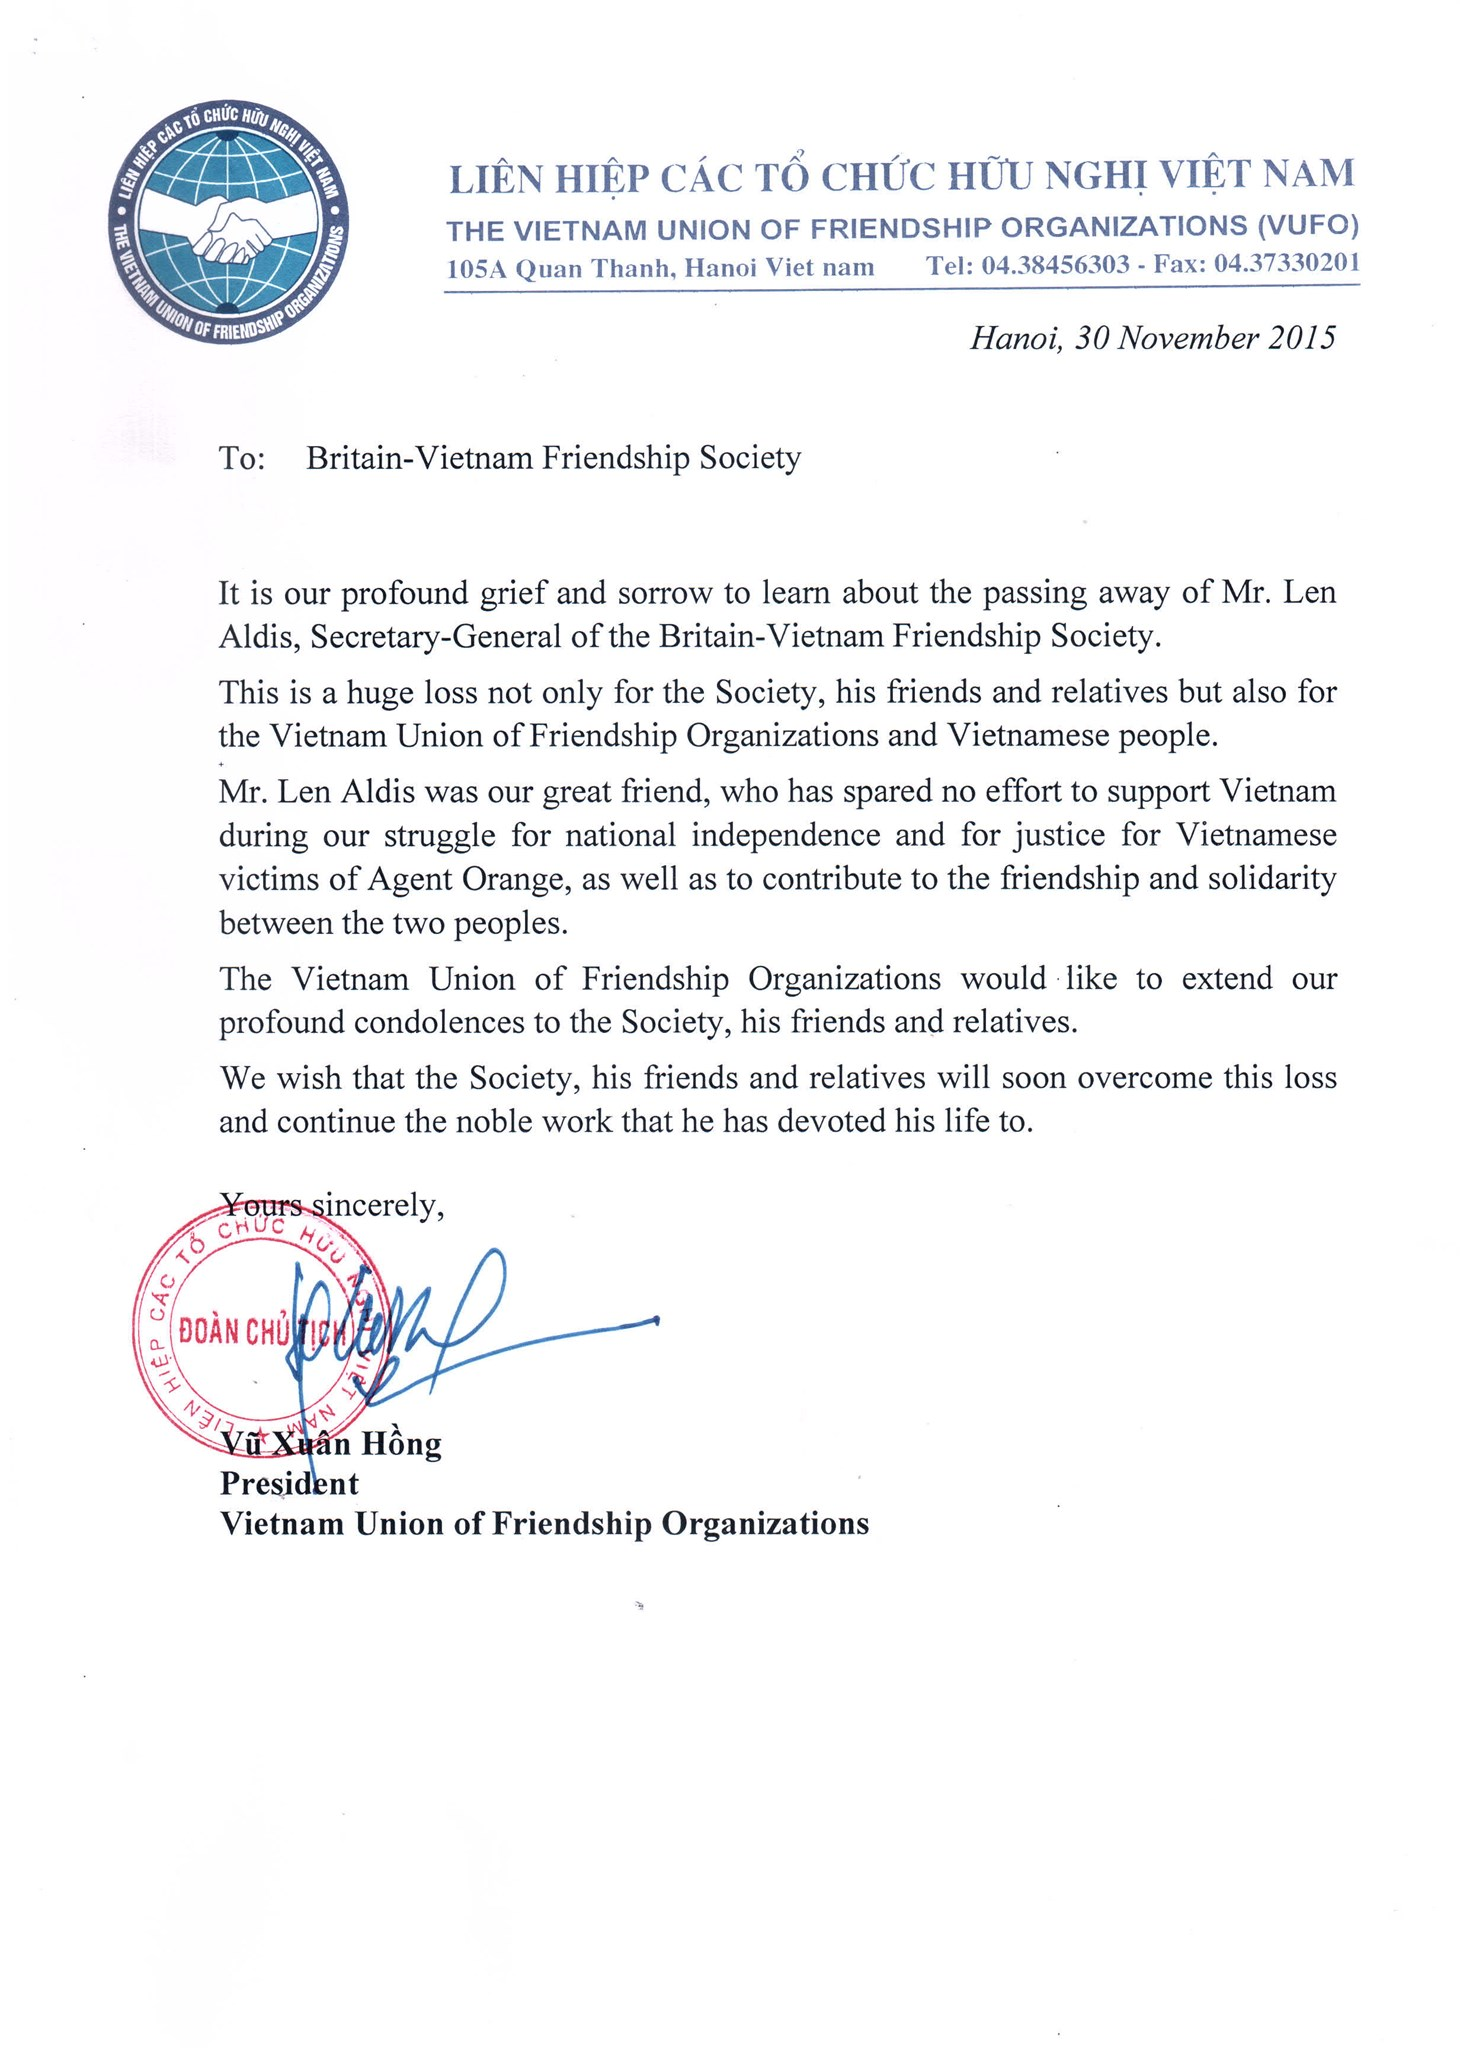 Letter from VUFO